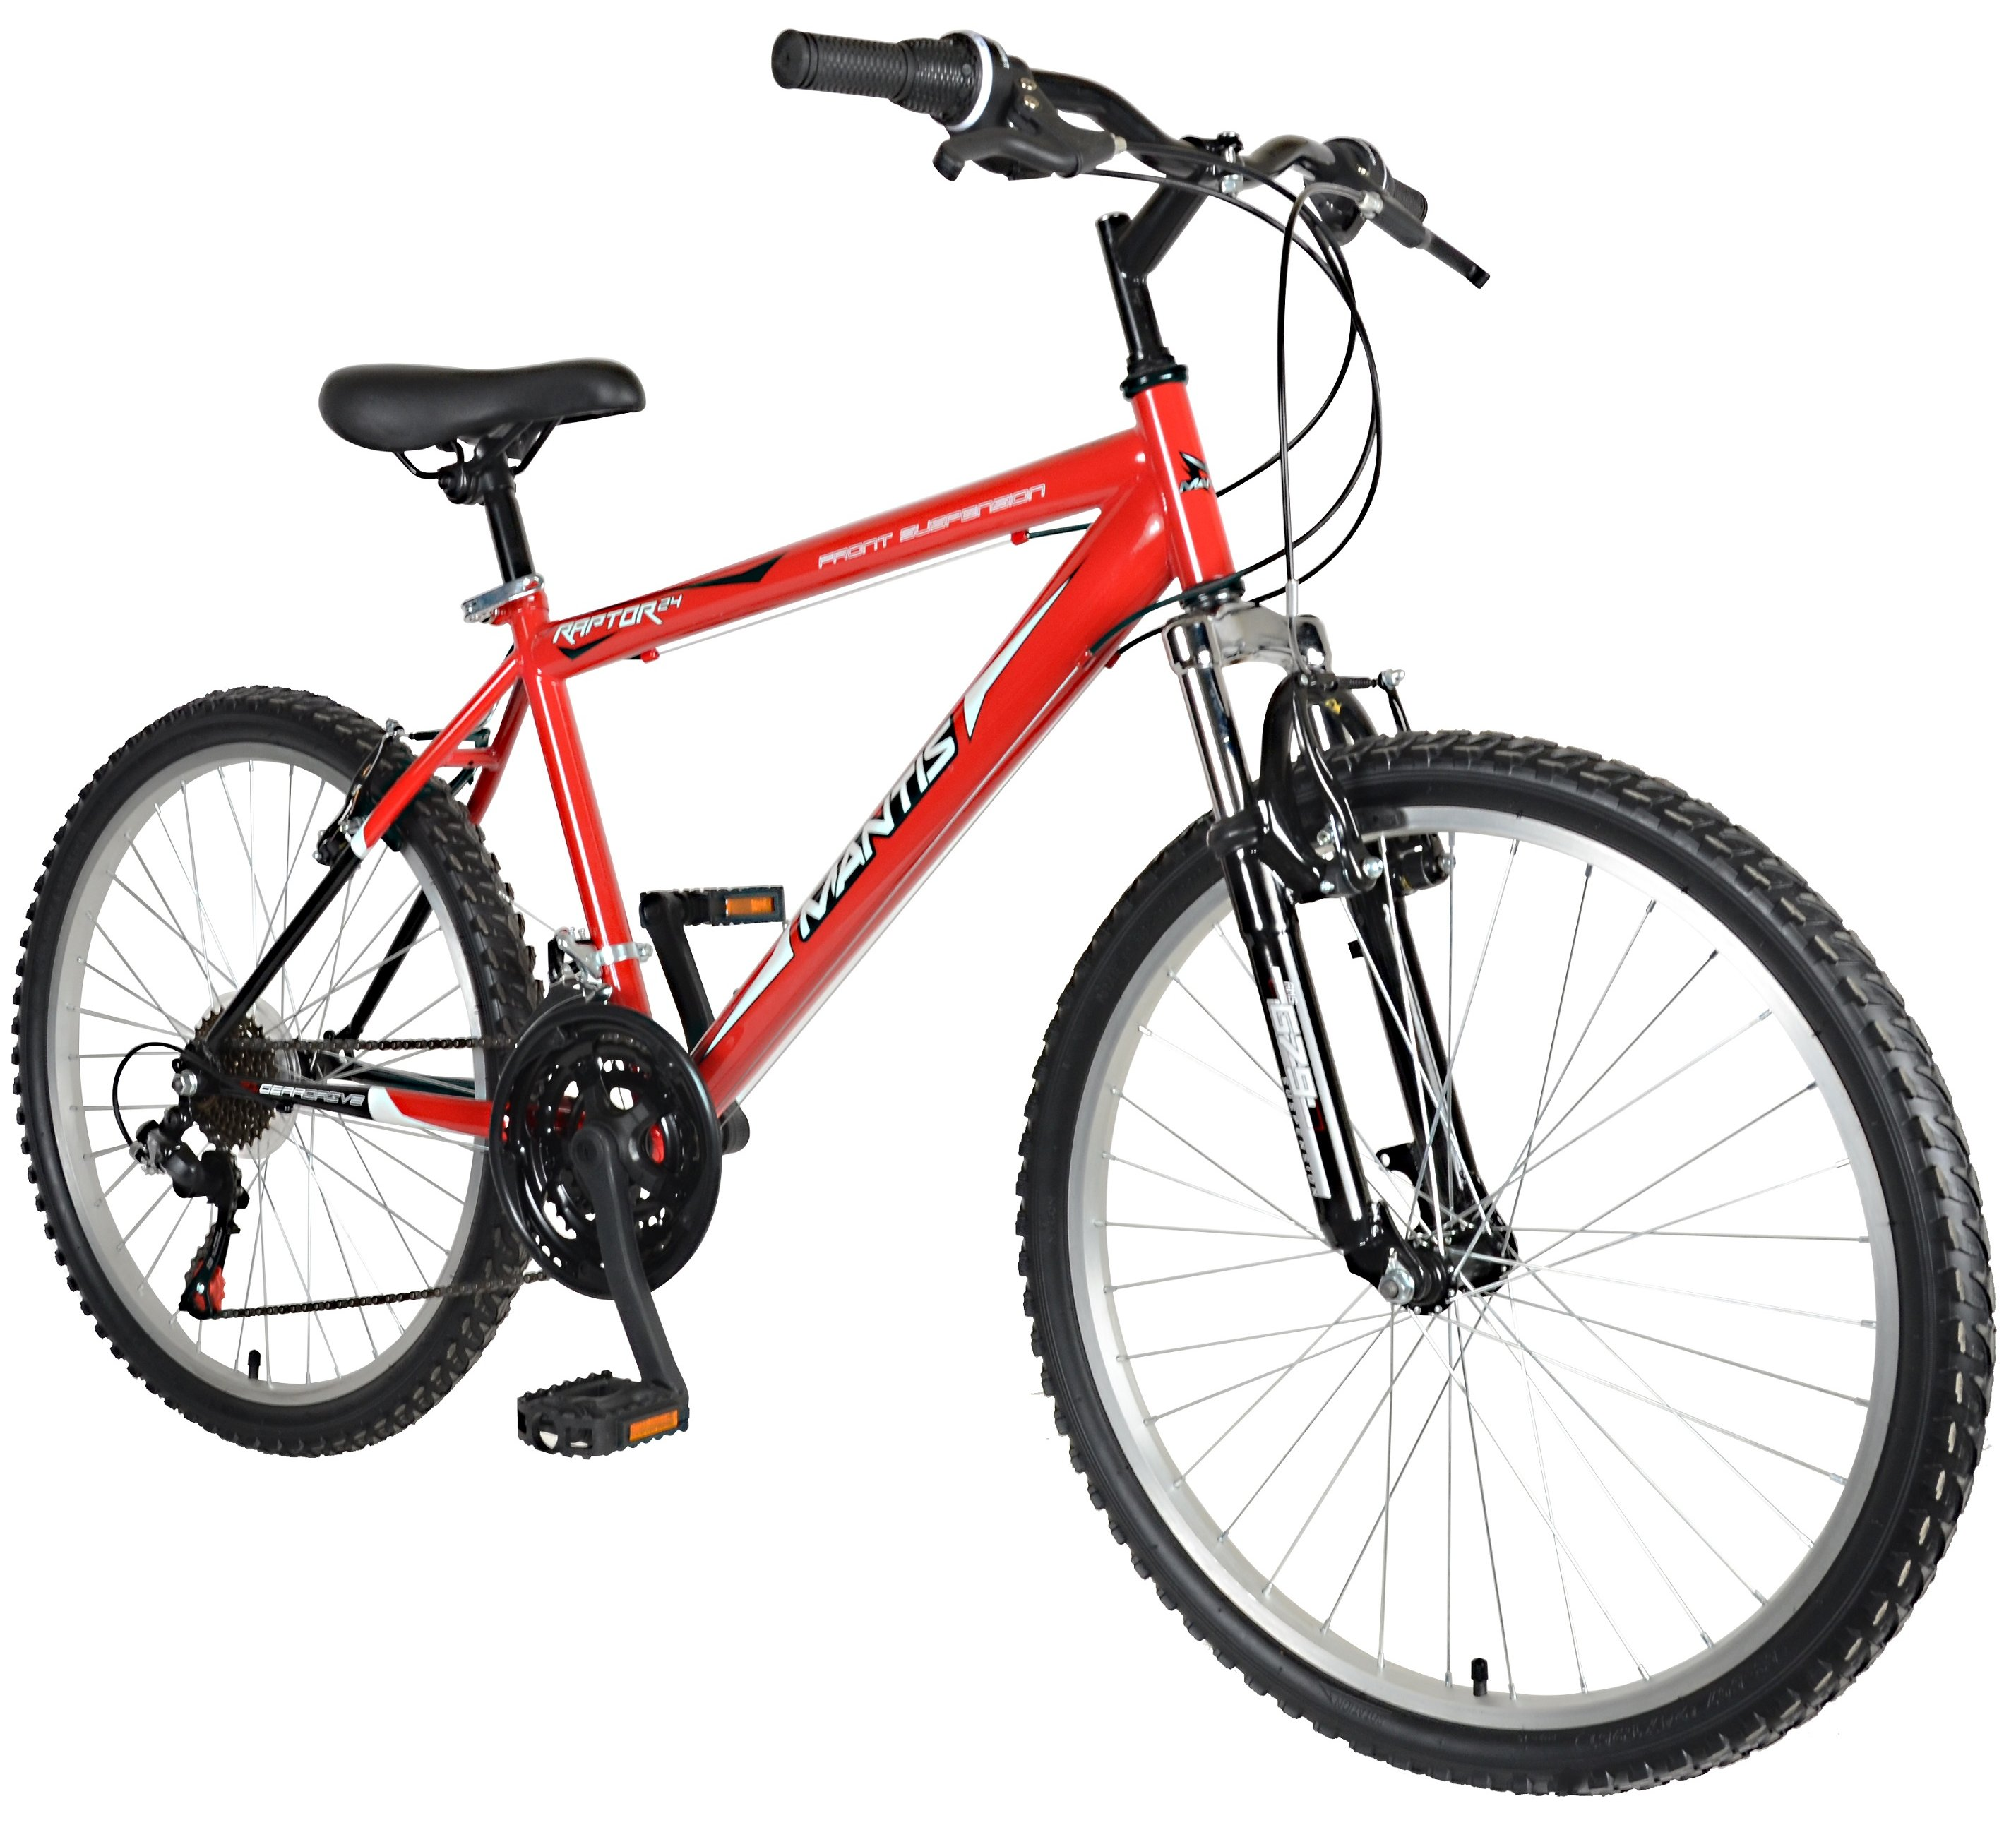 "Mantis Raptor Boys 24"" Hardtail MTB 21 Speed Bicycle"